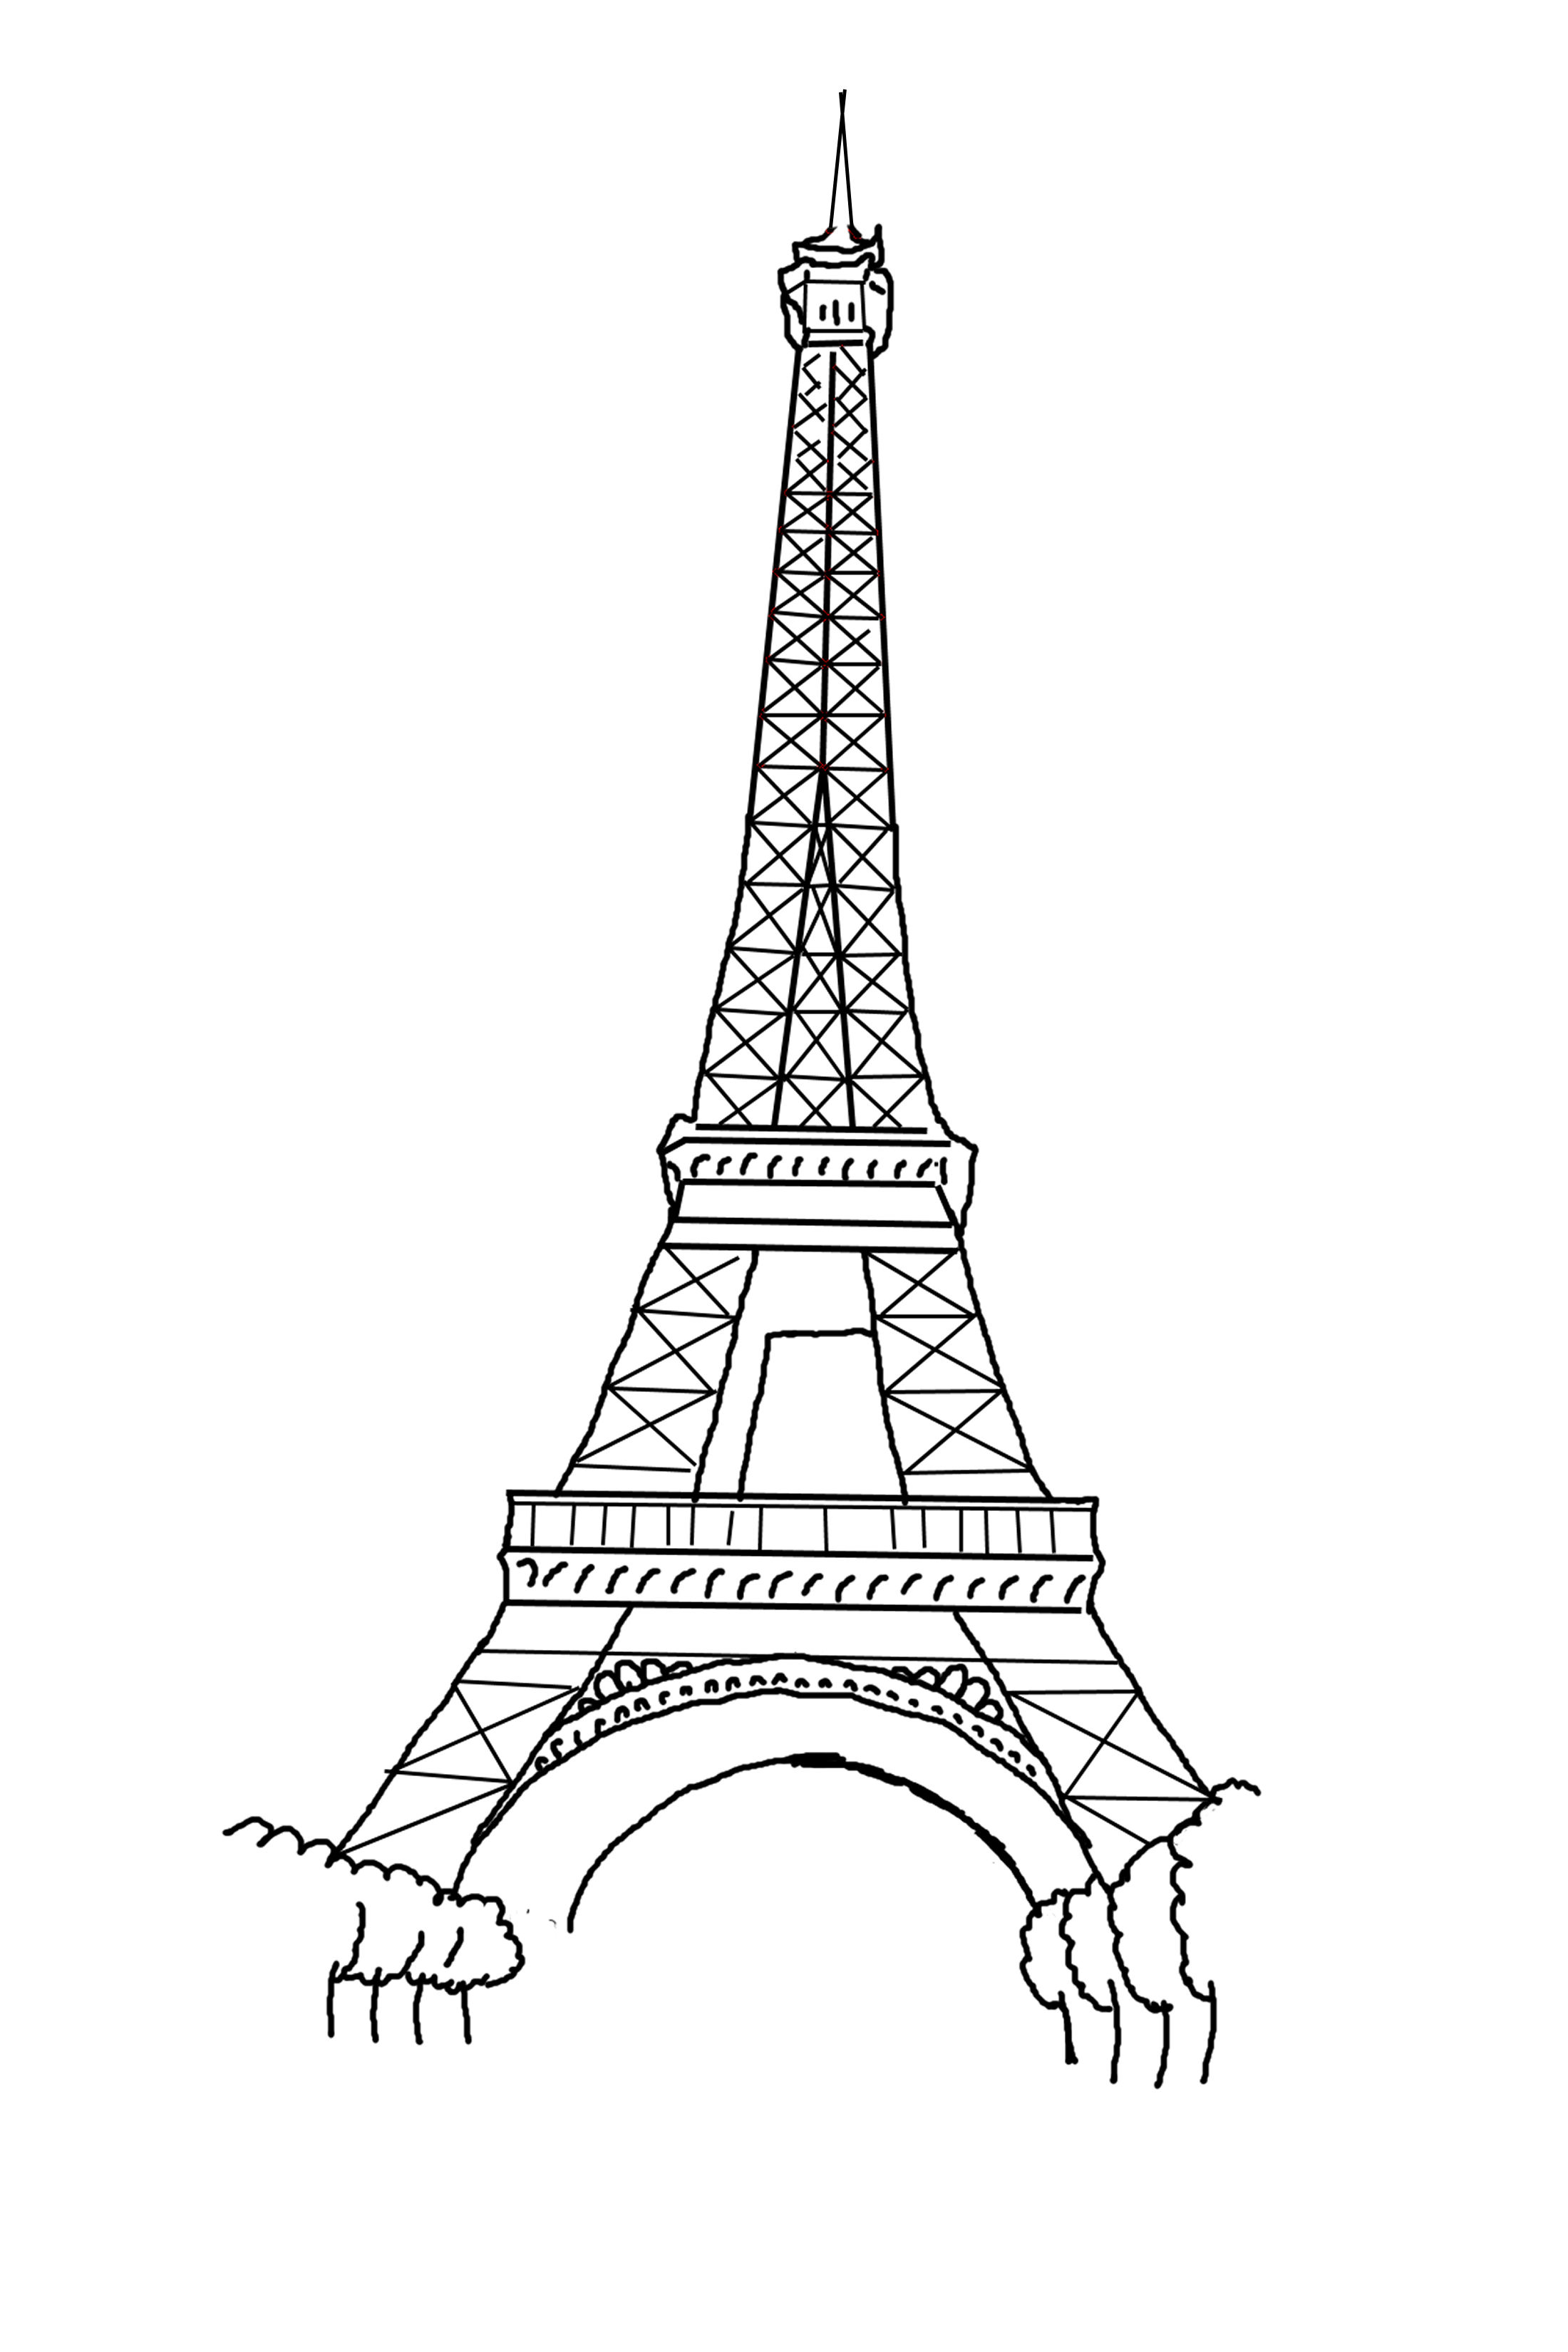 image relating to Printable Pictures of the Eiffel Tower named No cost Printable Eiffel Tower Coloring Web pages For Small children